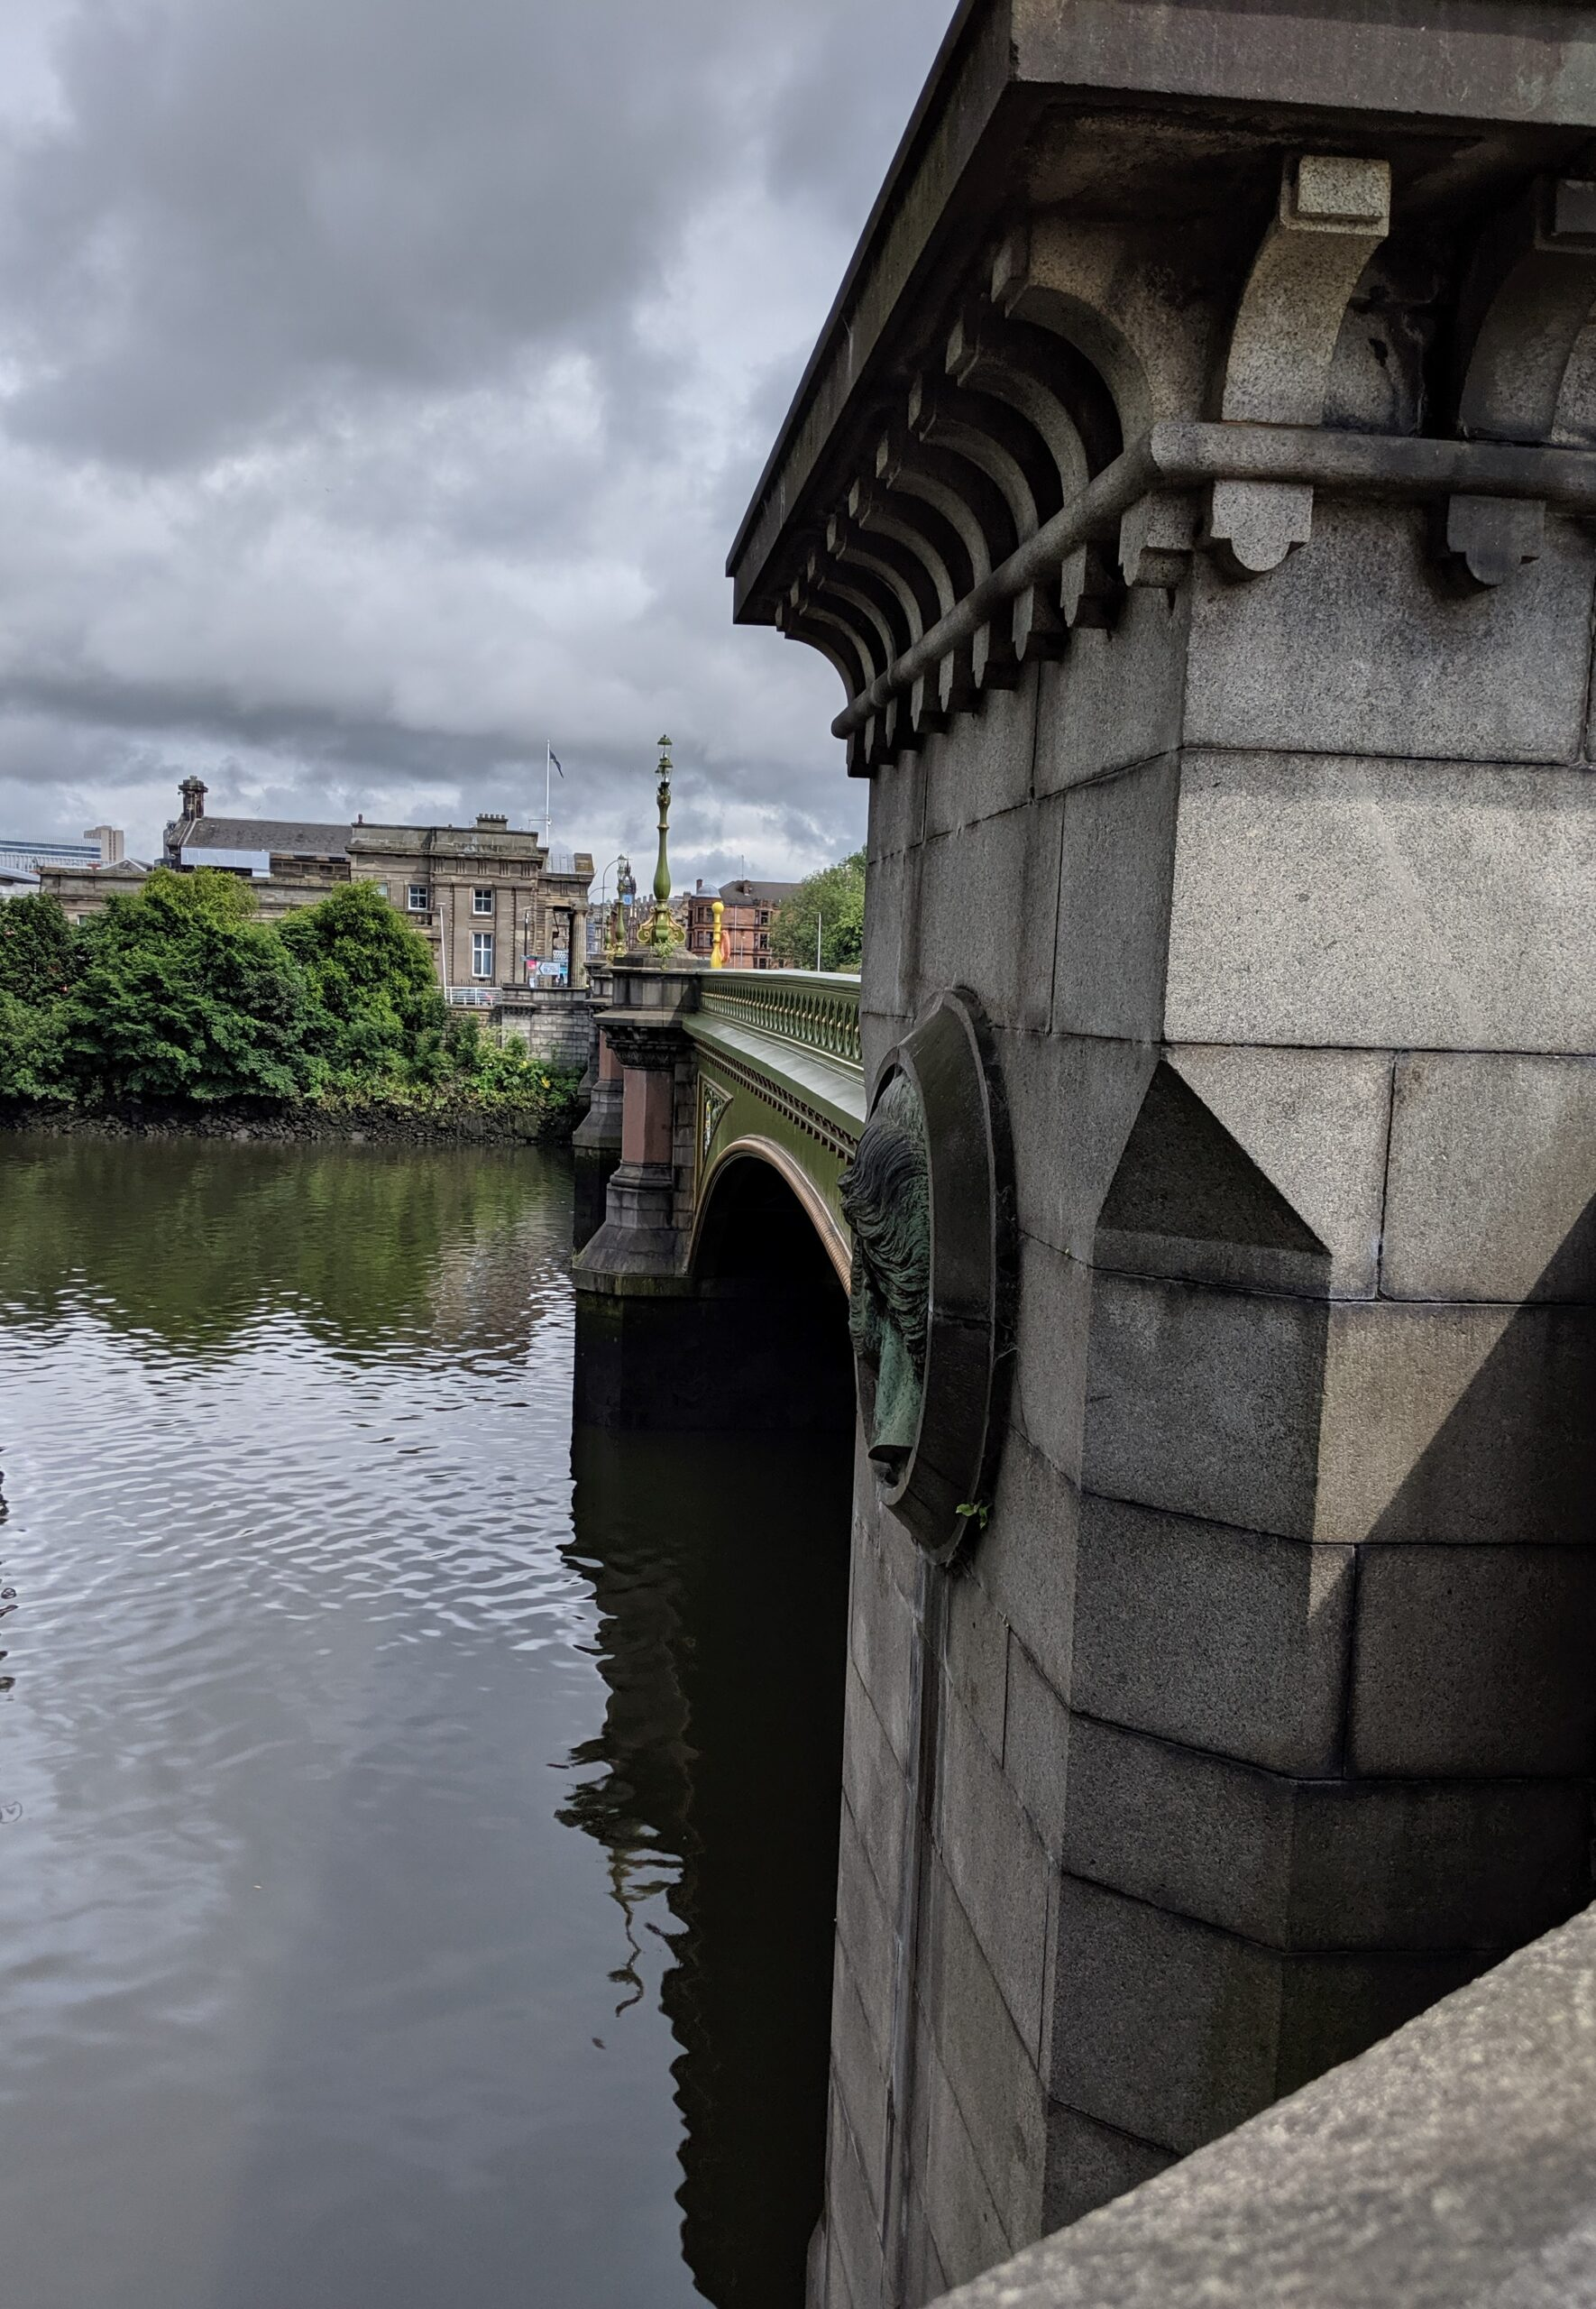 A large stone bridge crosses the Clyde River toward the north bank of the river.